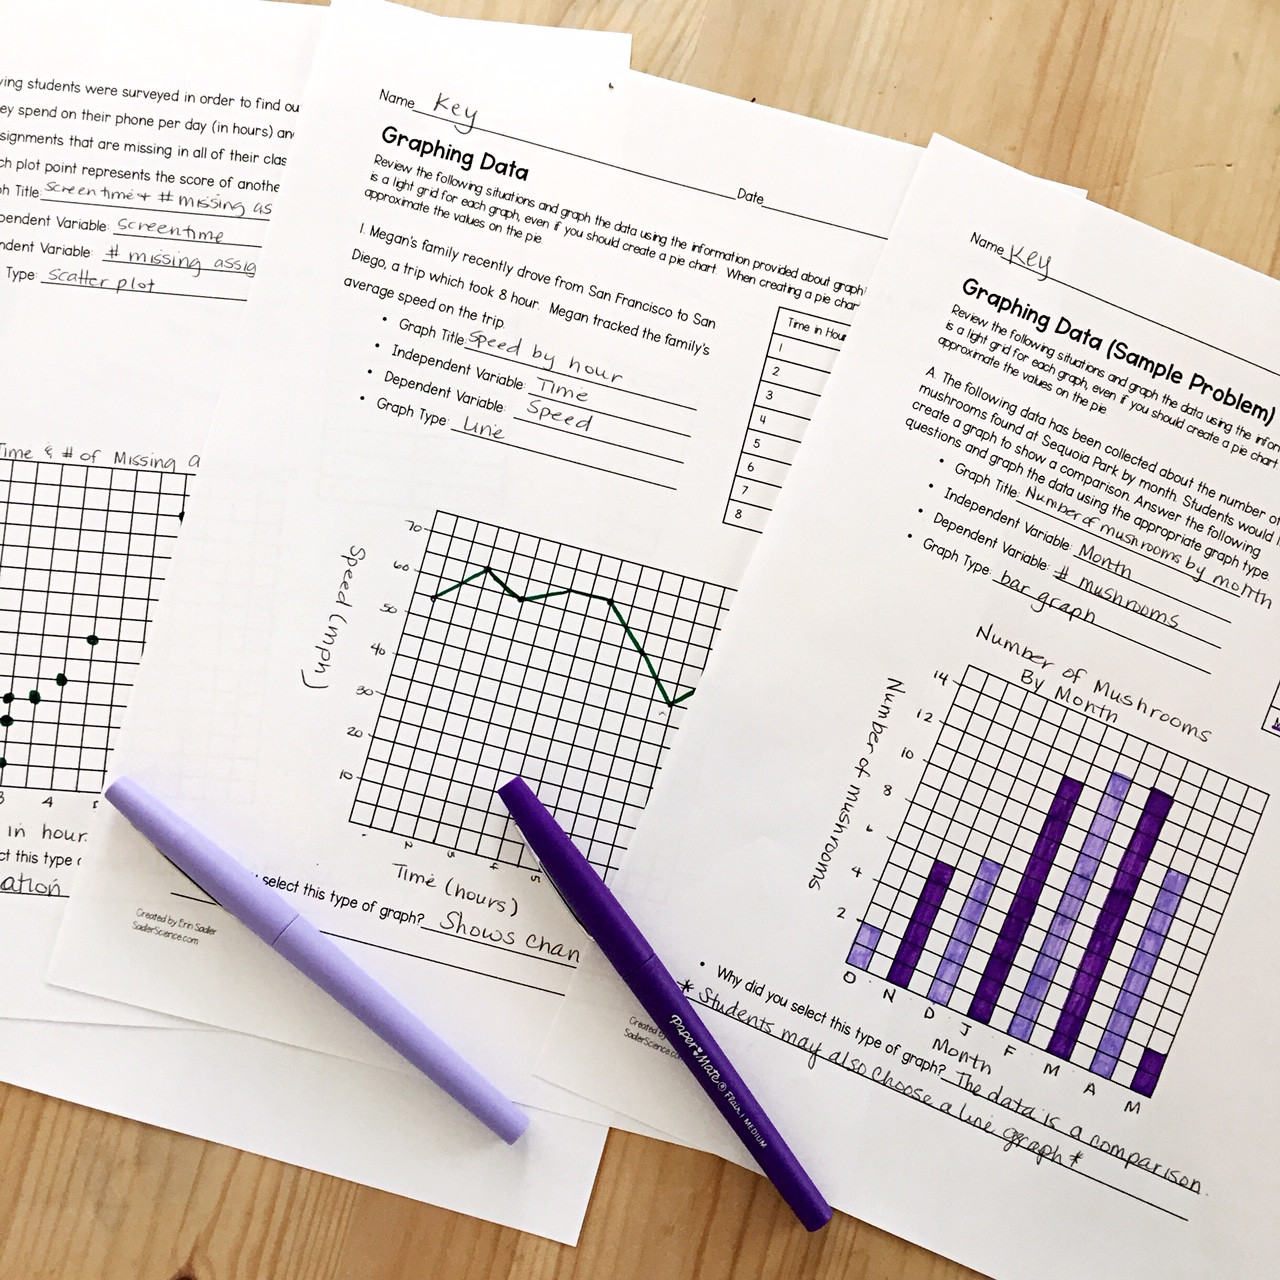 Graphing Worksheets High School Science Graphing Data In An Ngss Classroom Sadler Science